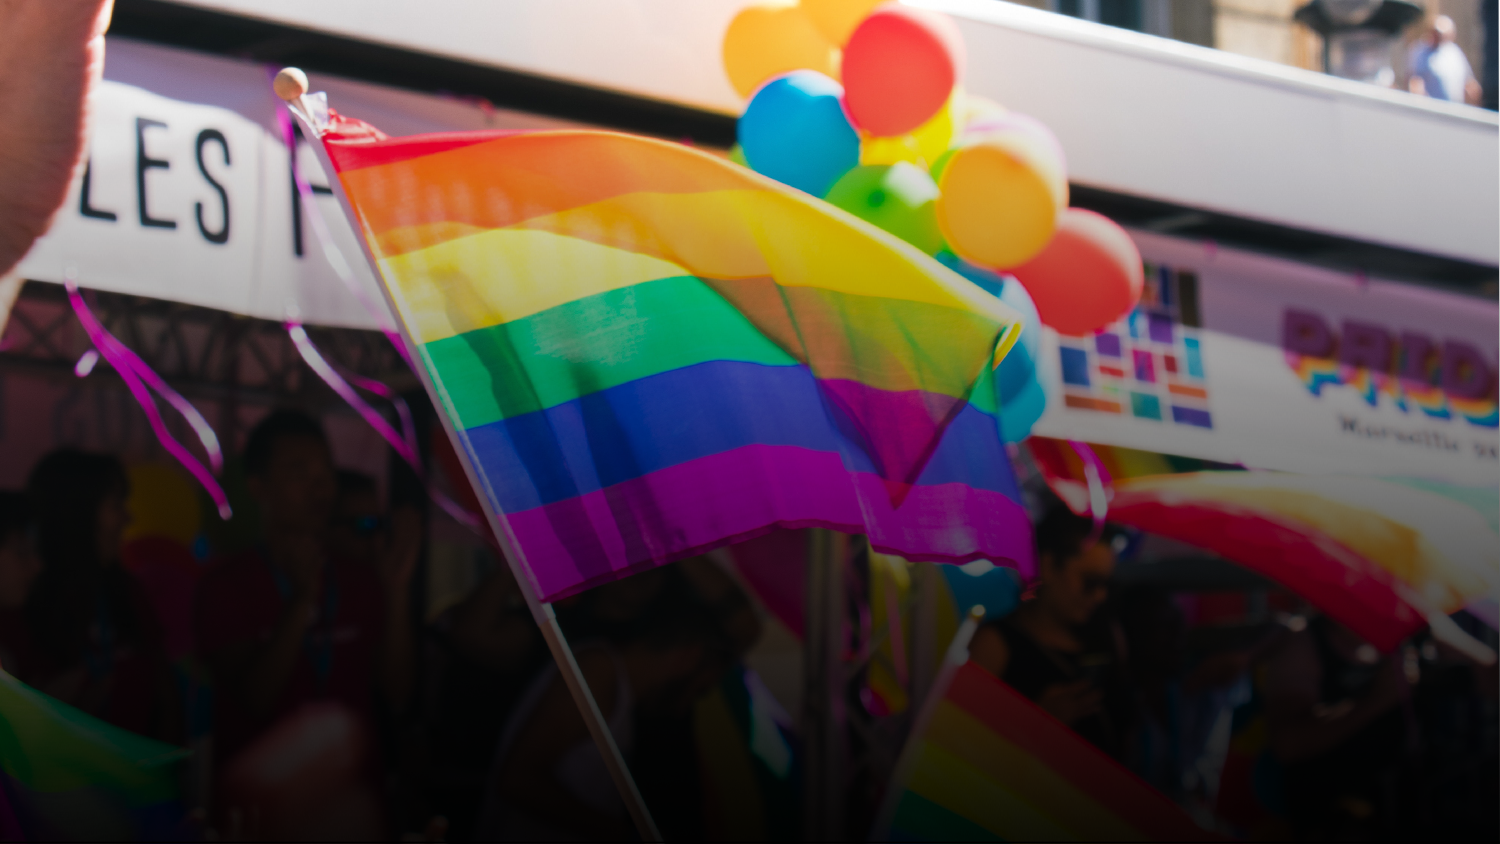 lgbtflag2-blog-030419